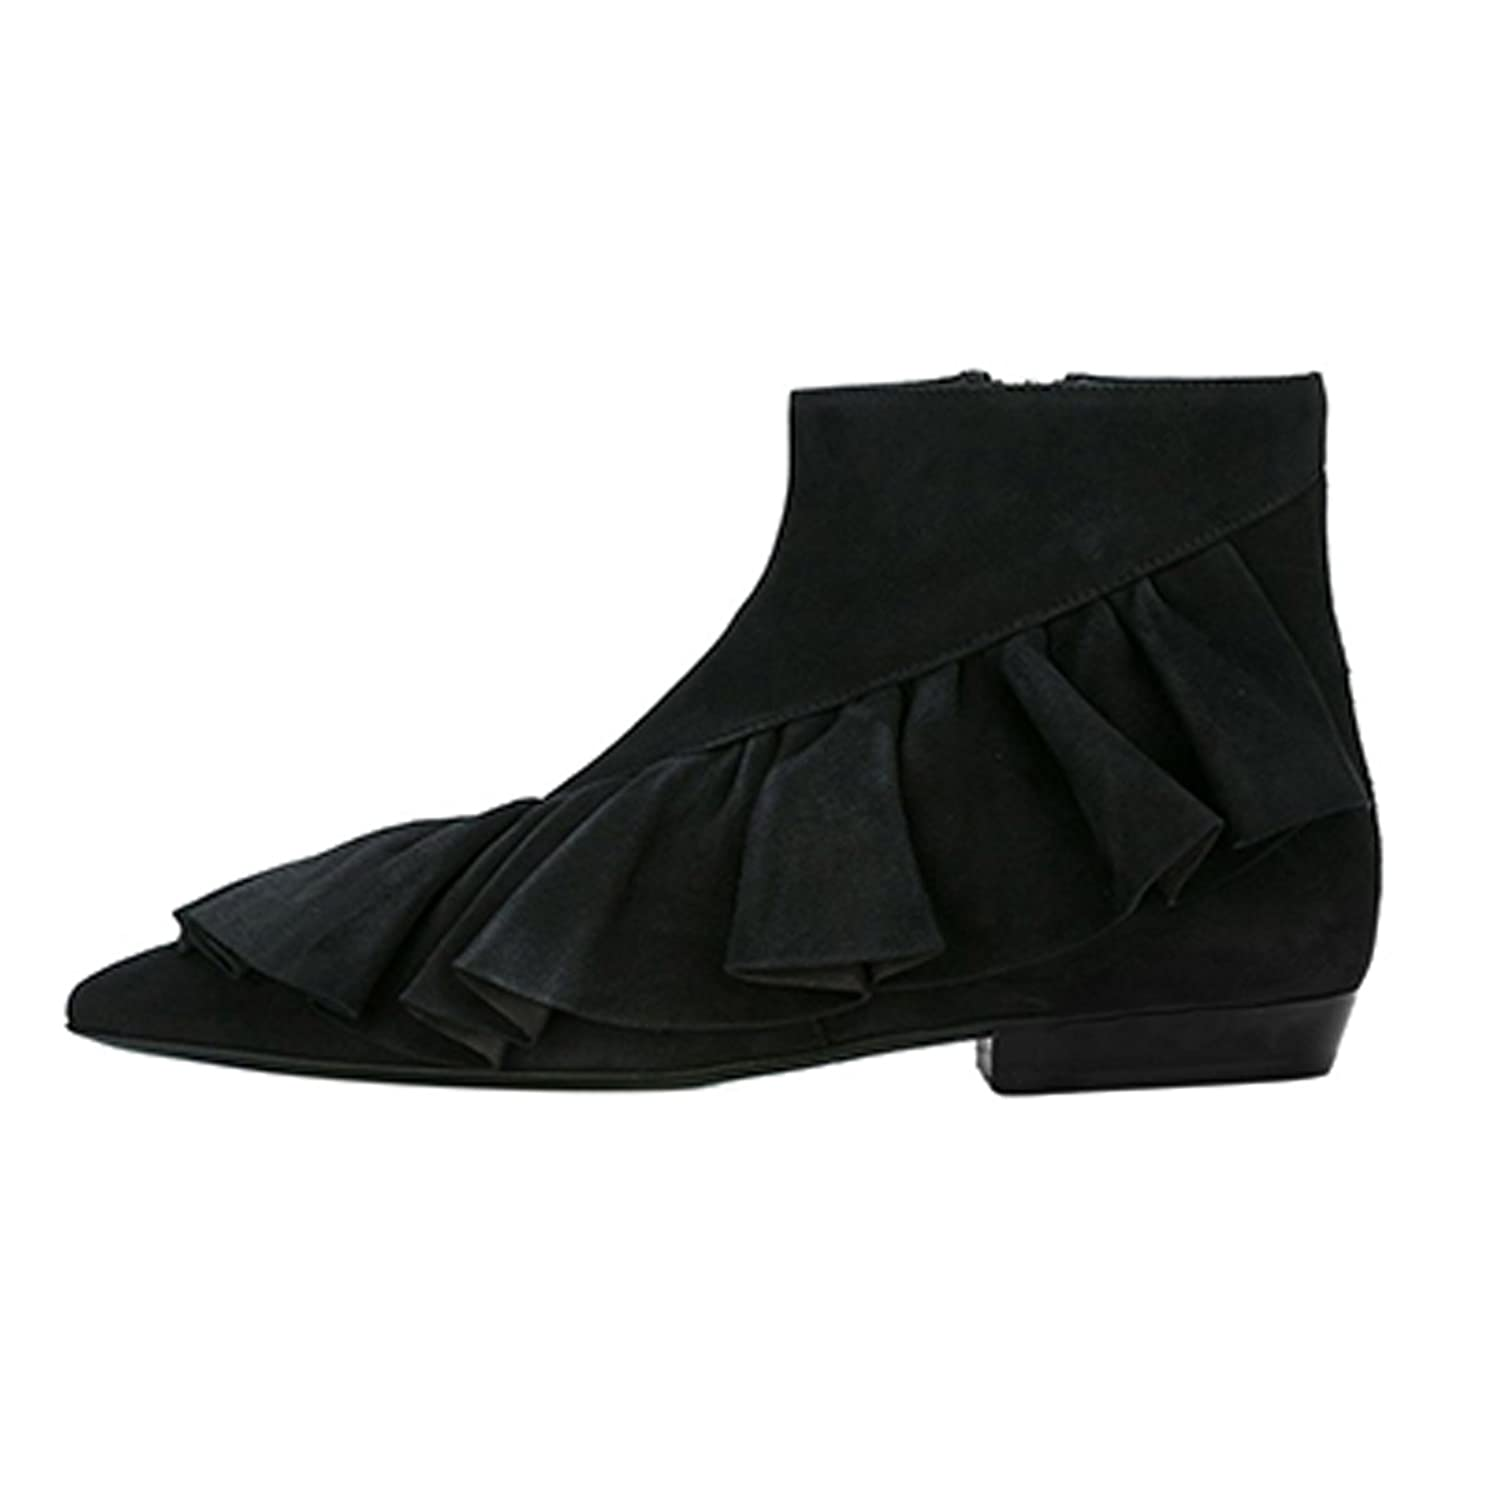 New Design Chic Pointed Toe Falbala Splicing Ankle High Flat Boots for Women